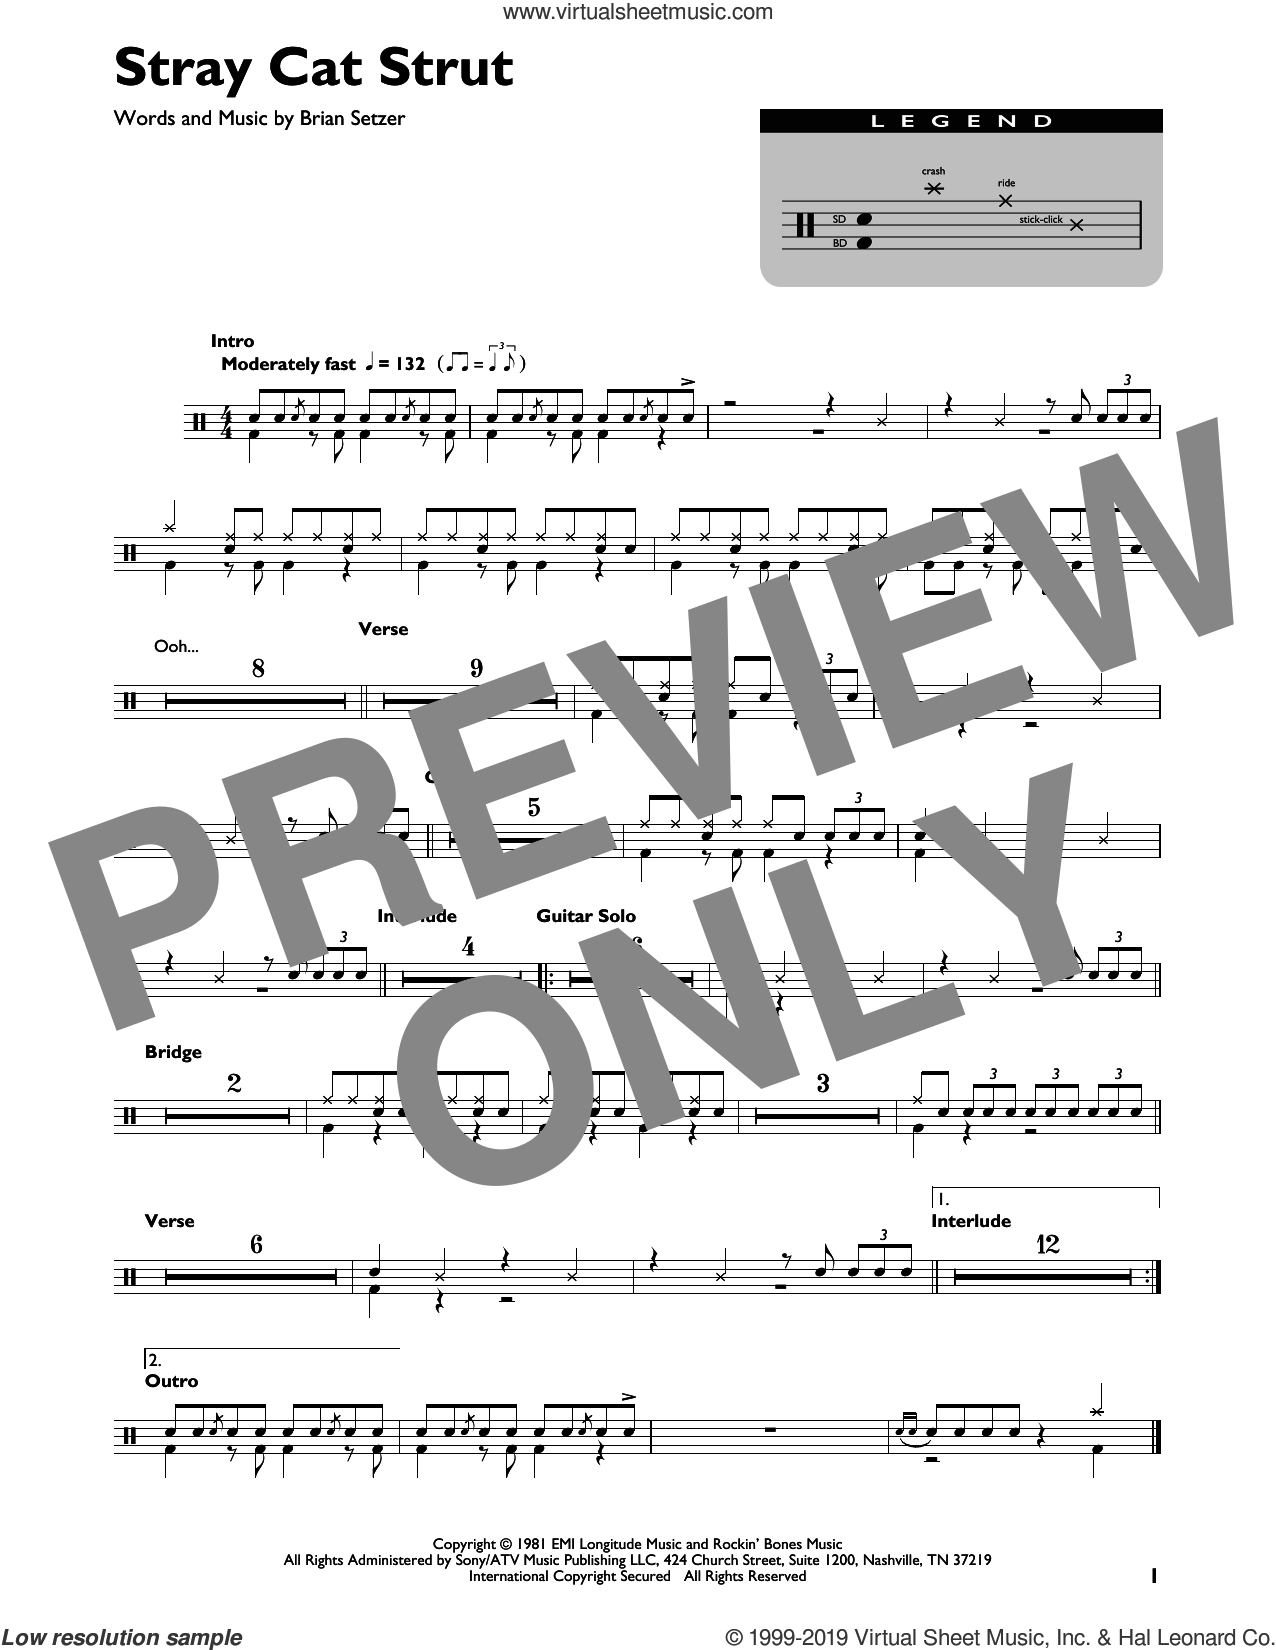 Stray Cat Strut sheet music for drums by Stray Cats and Brian Setzer, intermediate skill level